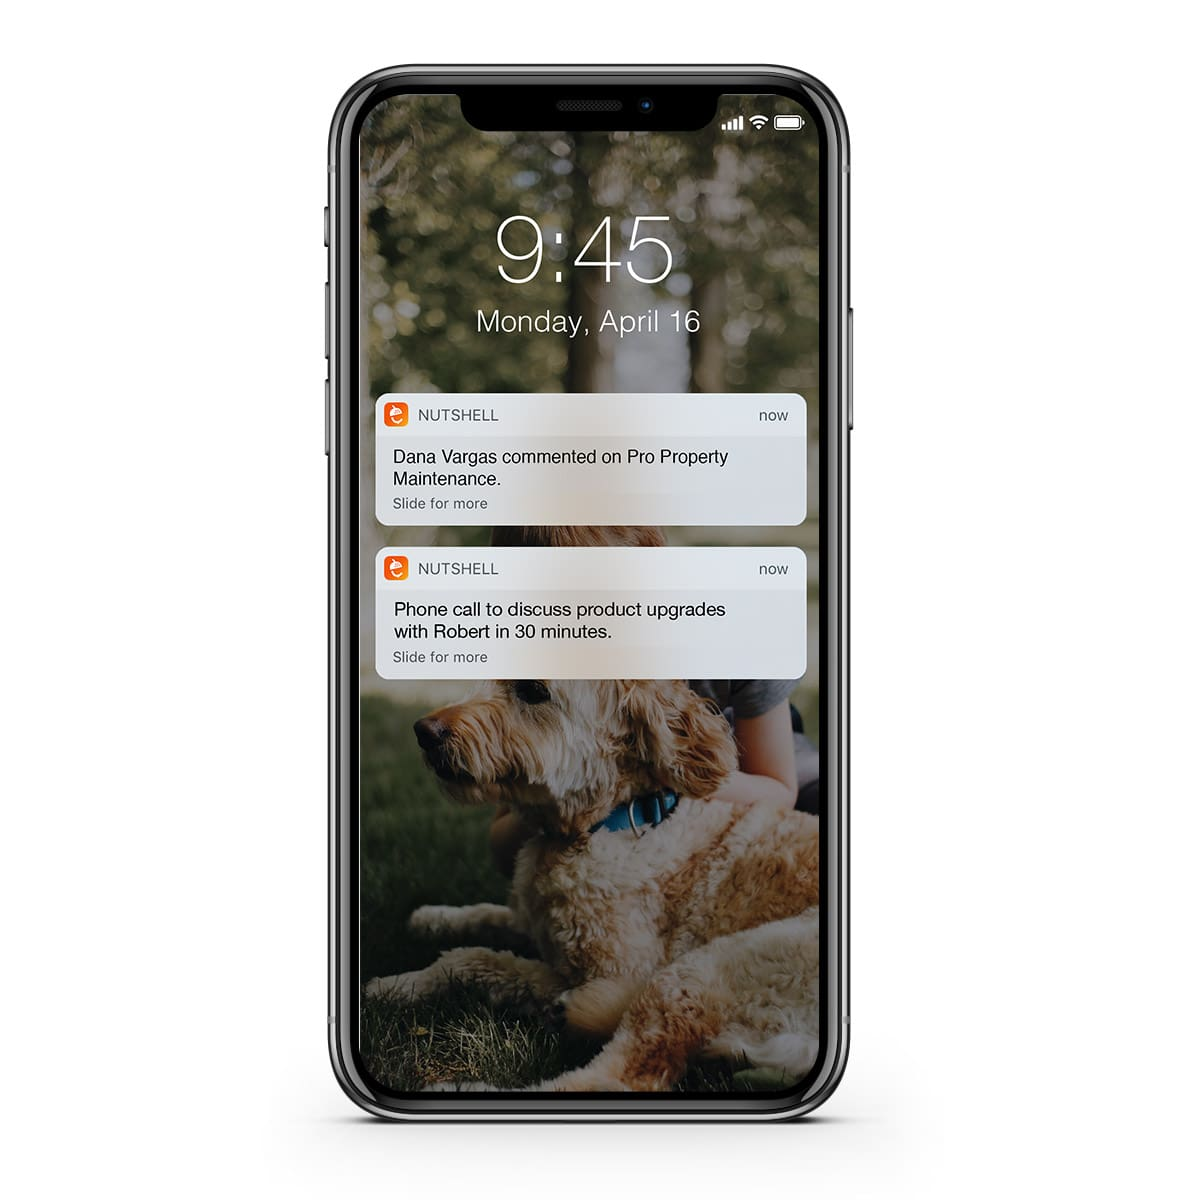 Nutshell iphone notifiction from team member